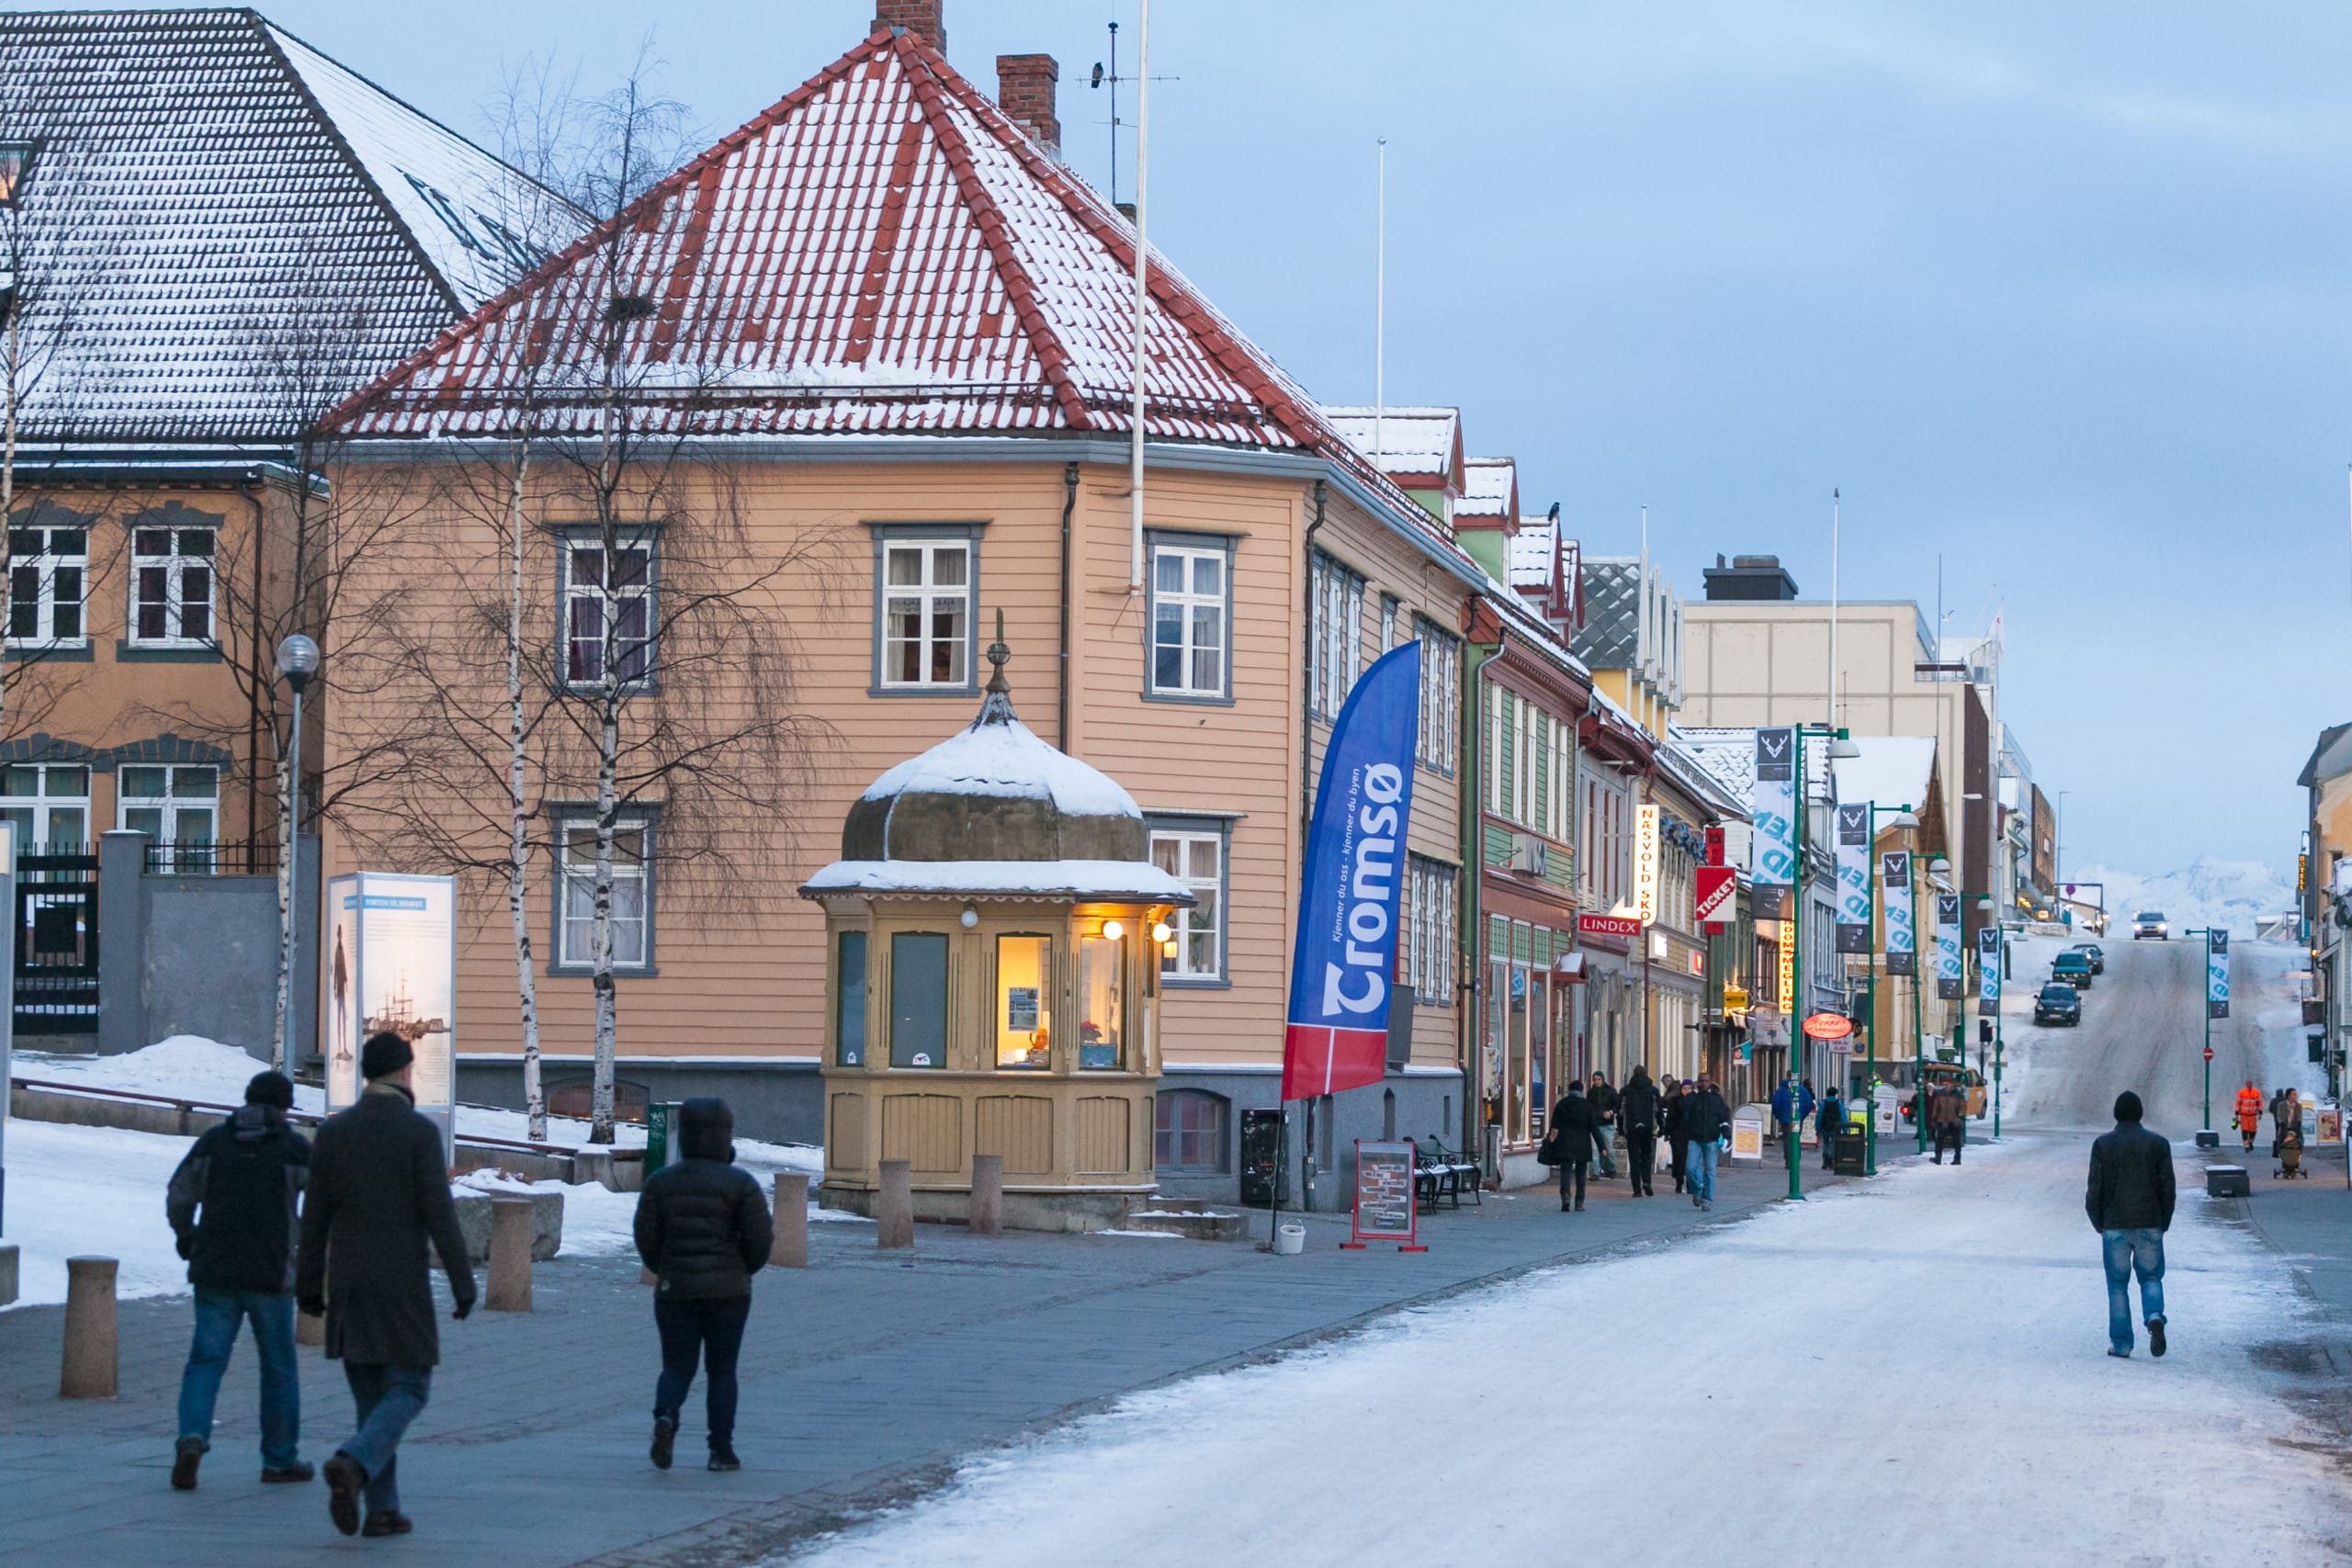 The main street of Tromsø, Storgata